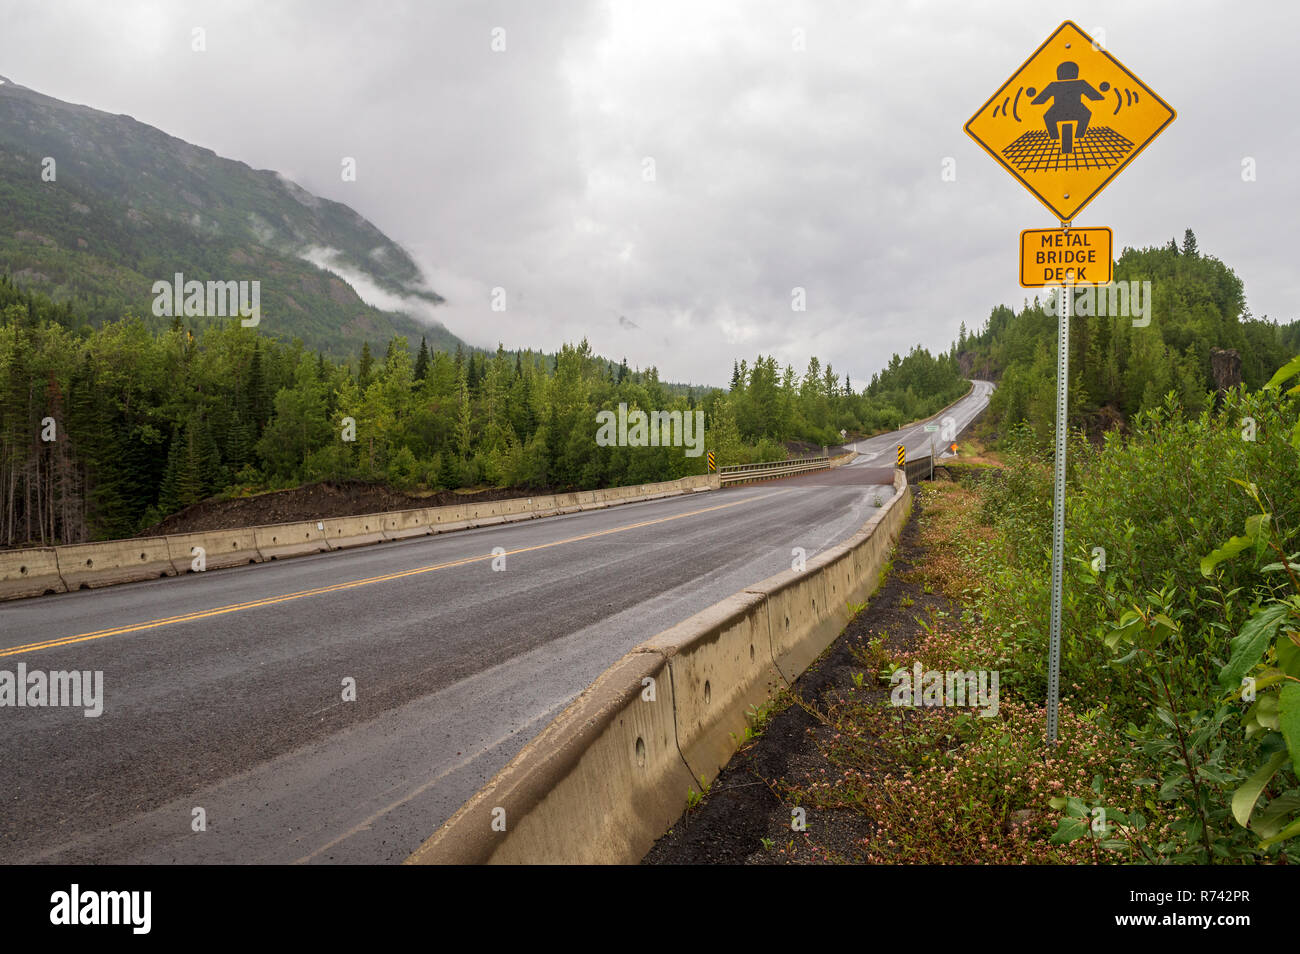 Metal Bridge Deck warning sign by the Burrage River in British Columbia, Canada - Stock Image